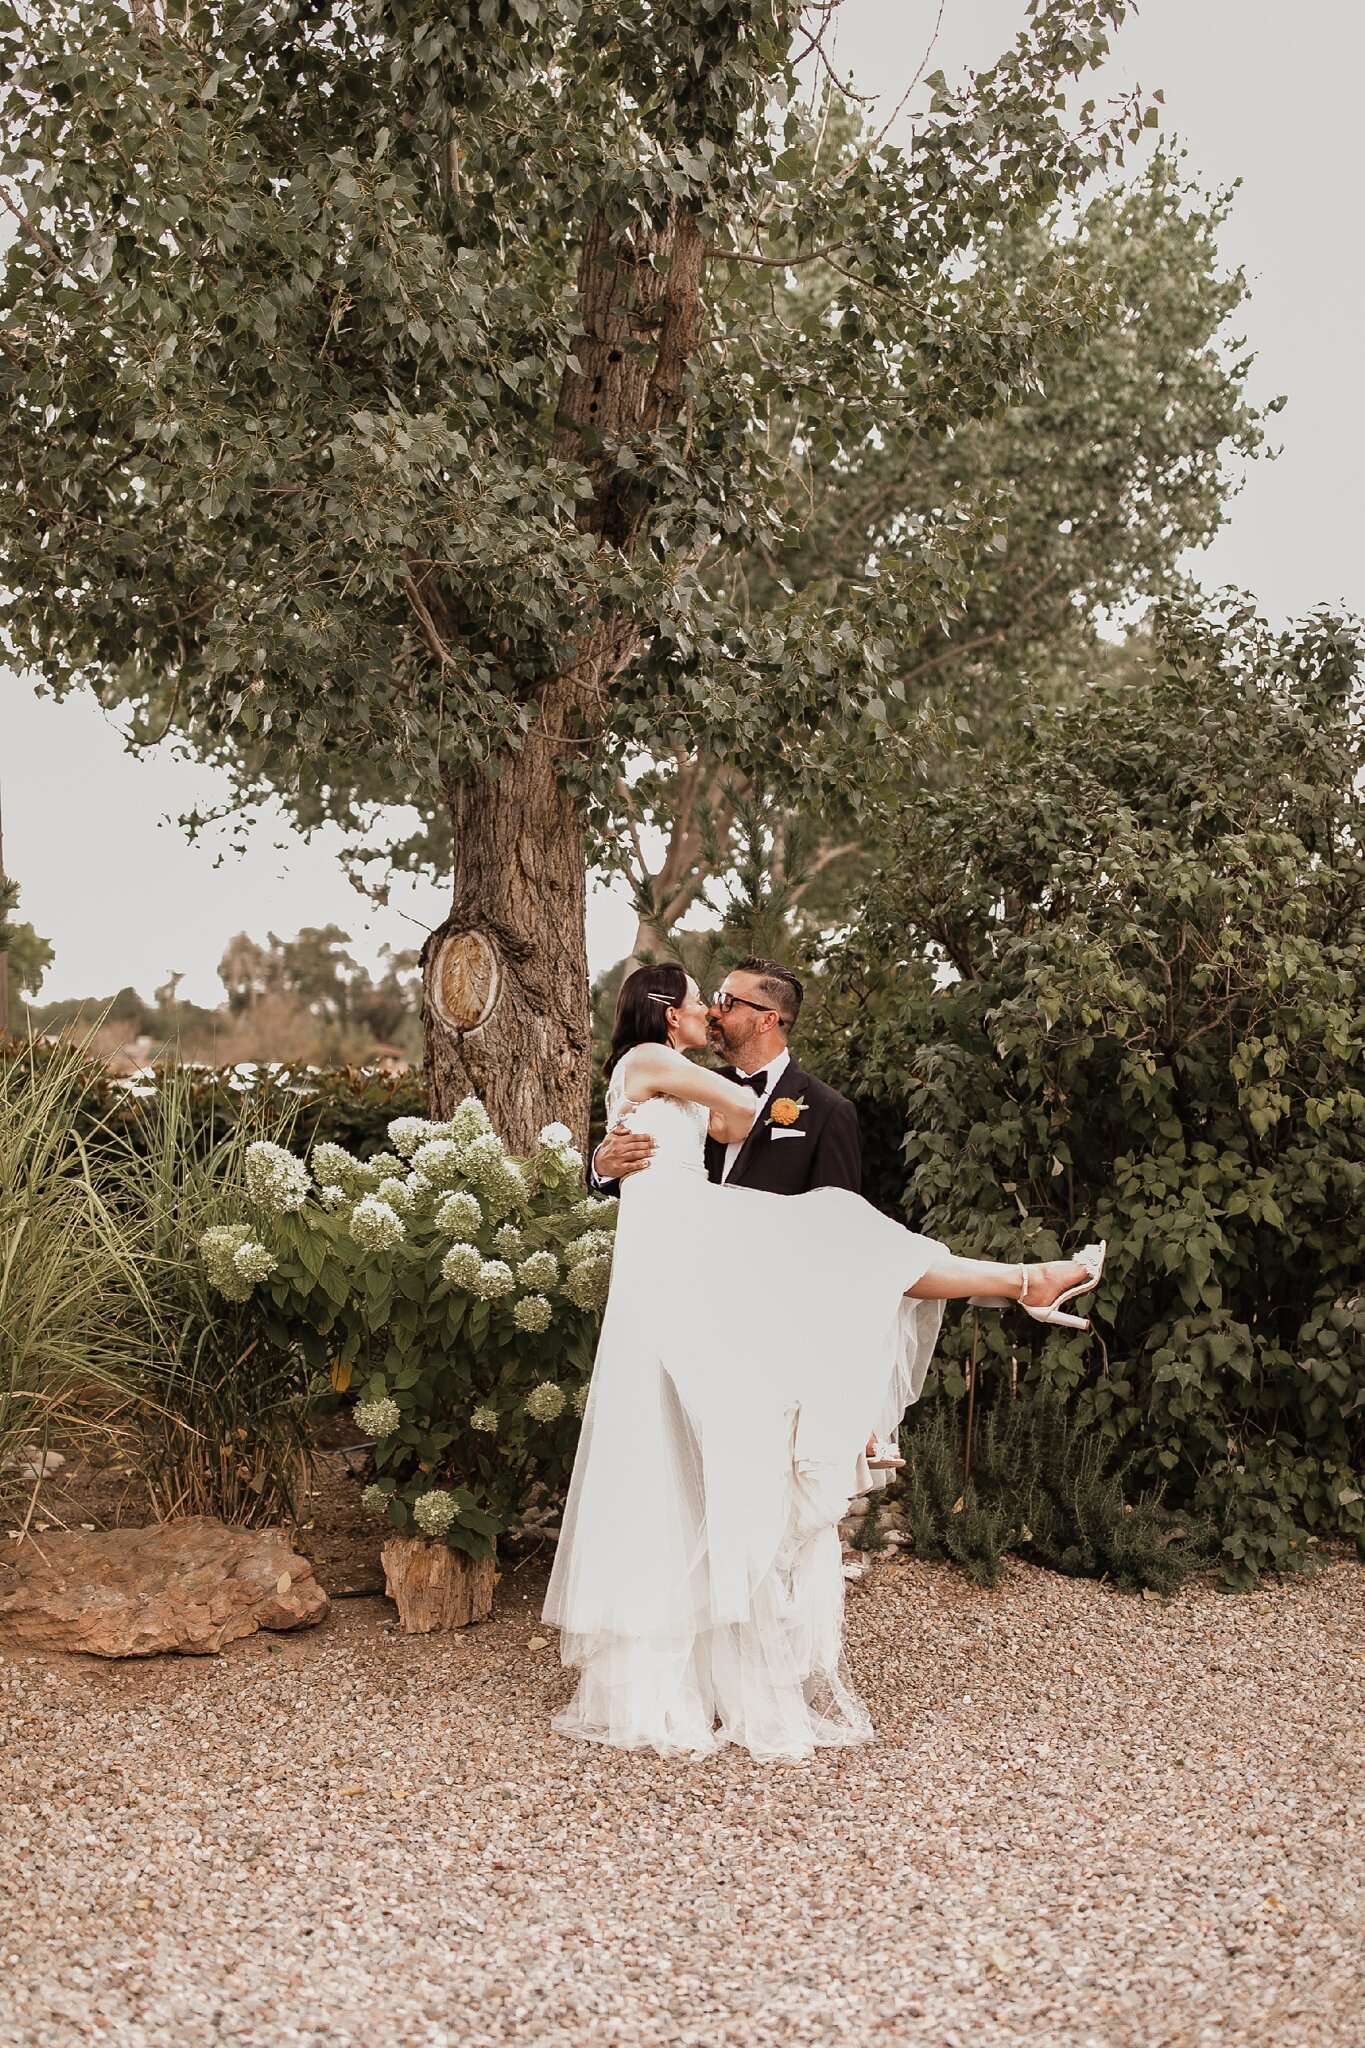 Alicia+lucia+photography+-+albuquerque+wedding+photographer+-+santa+fe+wedding+photography+-+new+mexico+wedding+photographer+-+new+mexico+wedding+-+bed+and+breakfast+wedding+-+sarabande+wedding+-+sarabande+bed+and+breakfast+wedding_0077.jpg